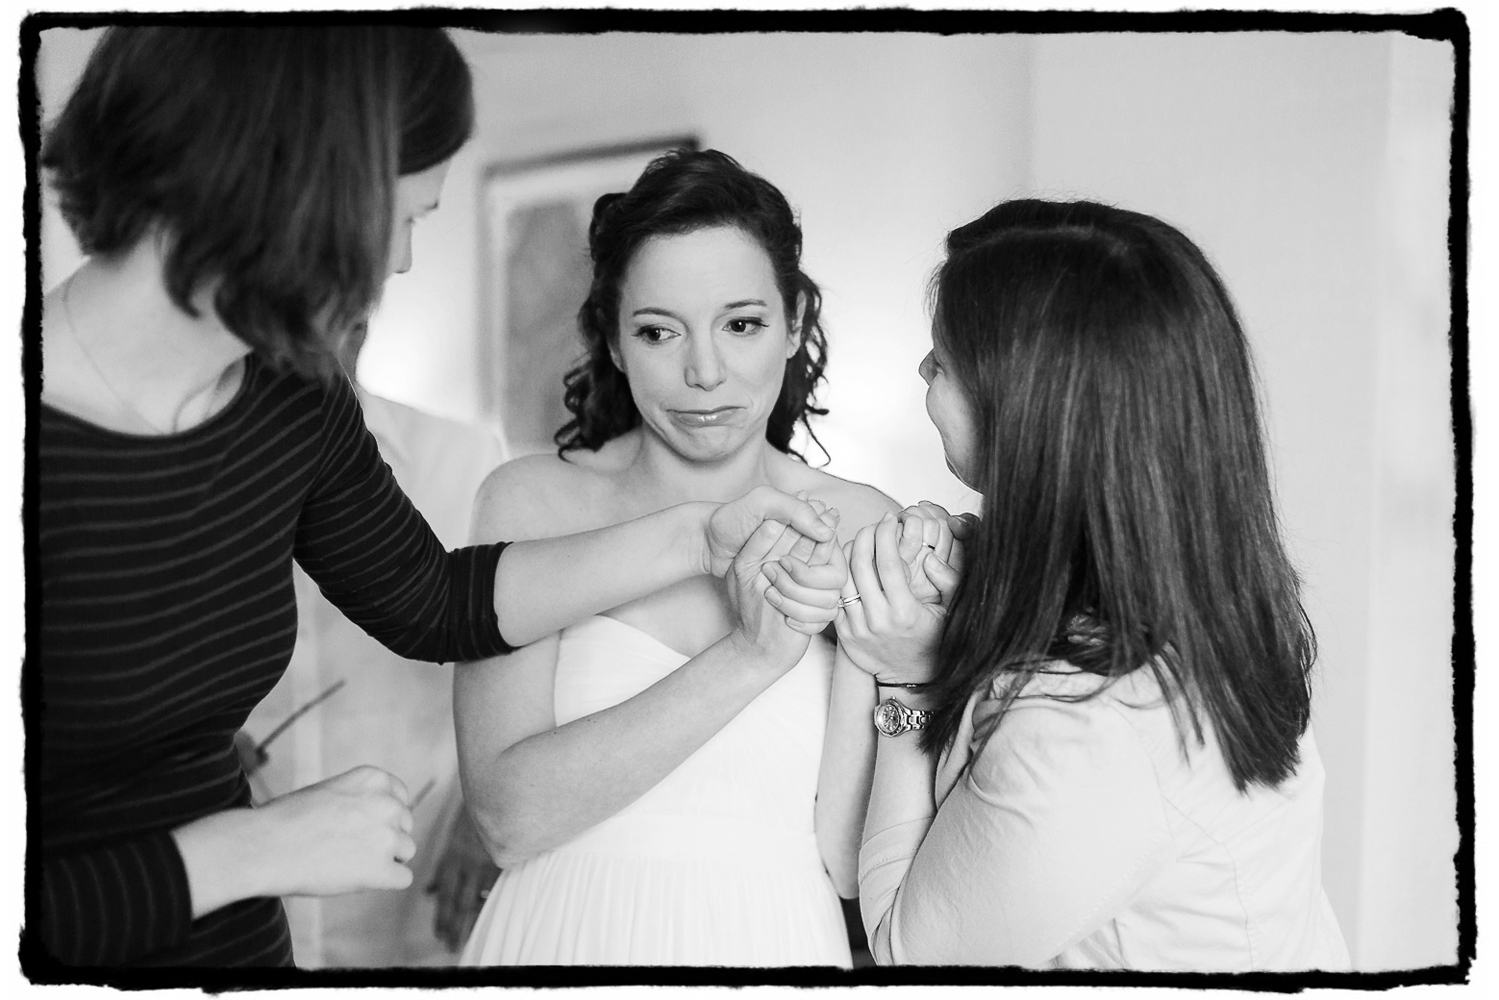 Julie shares an emotional moment with her bridesmaids as it hits her that this is really the day of her wedding at Battery Gardens.